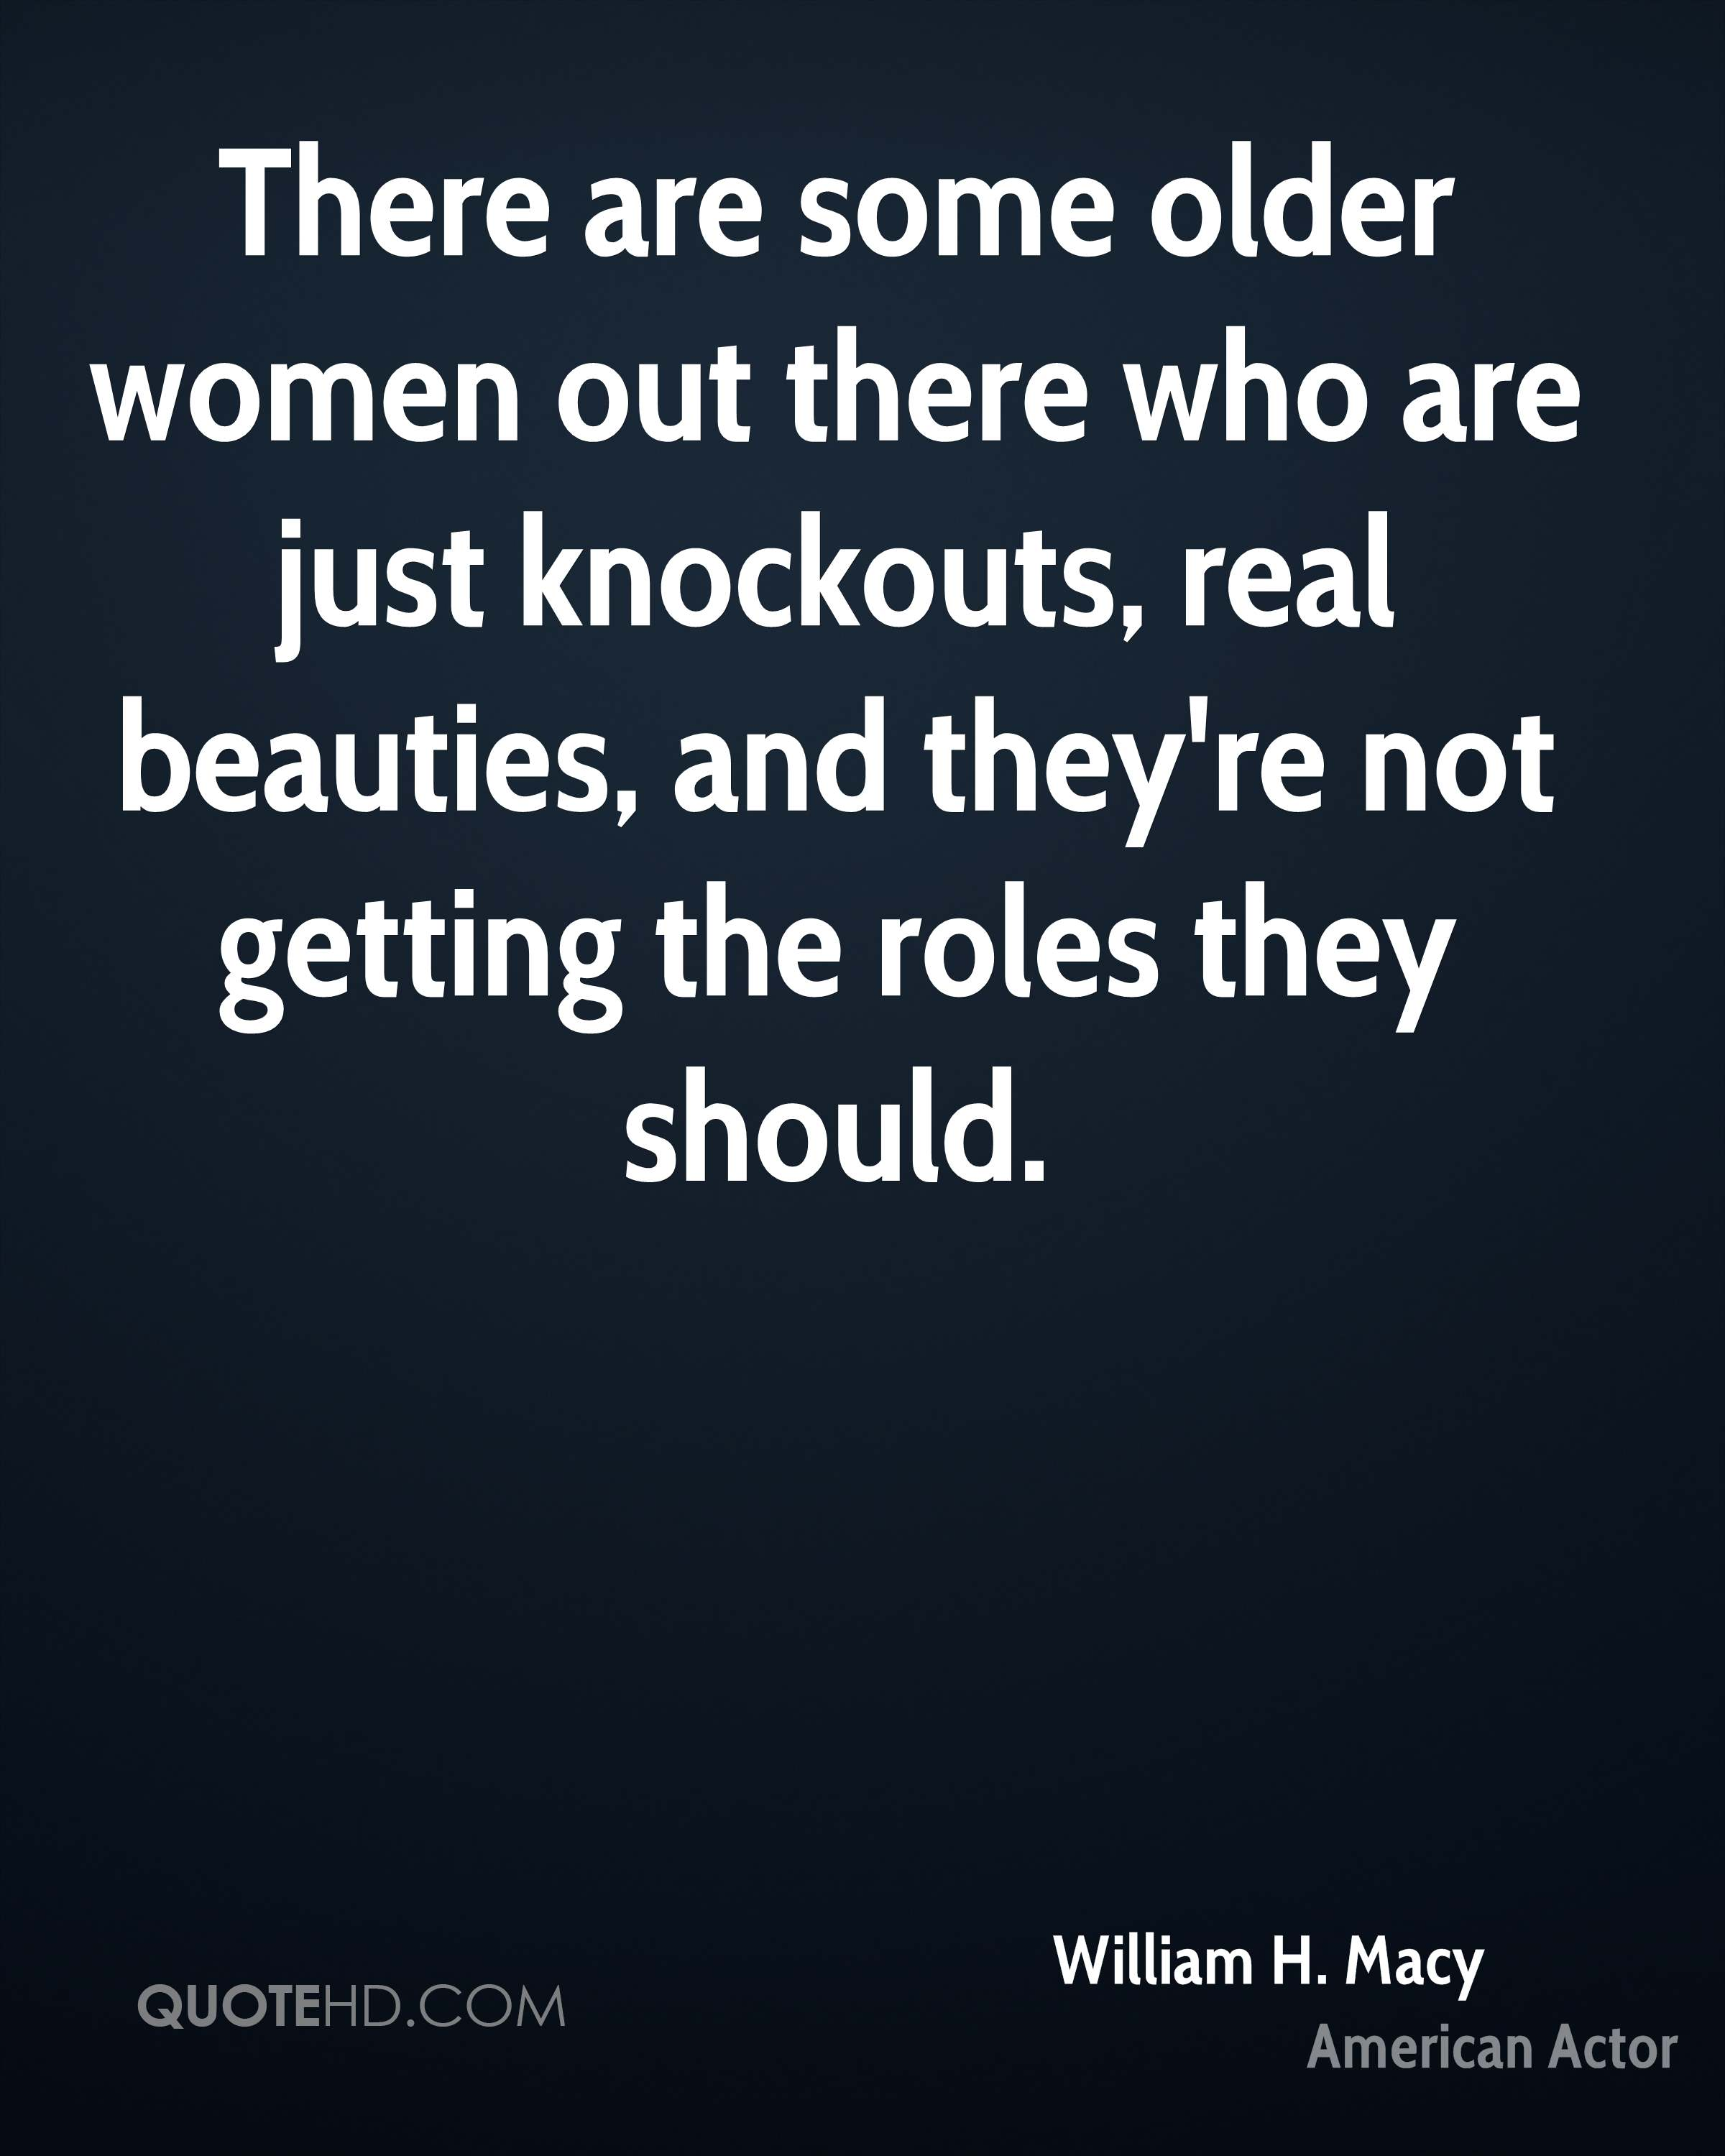 There are some older women out there who are just knockouts, real beauties, and they're not getting the roles they should.